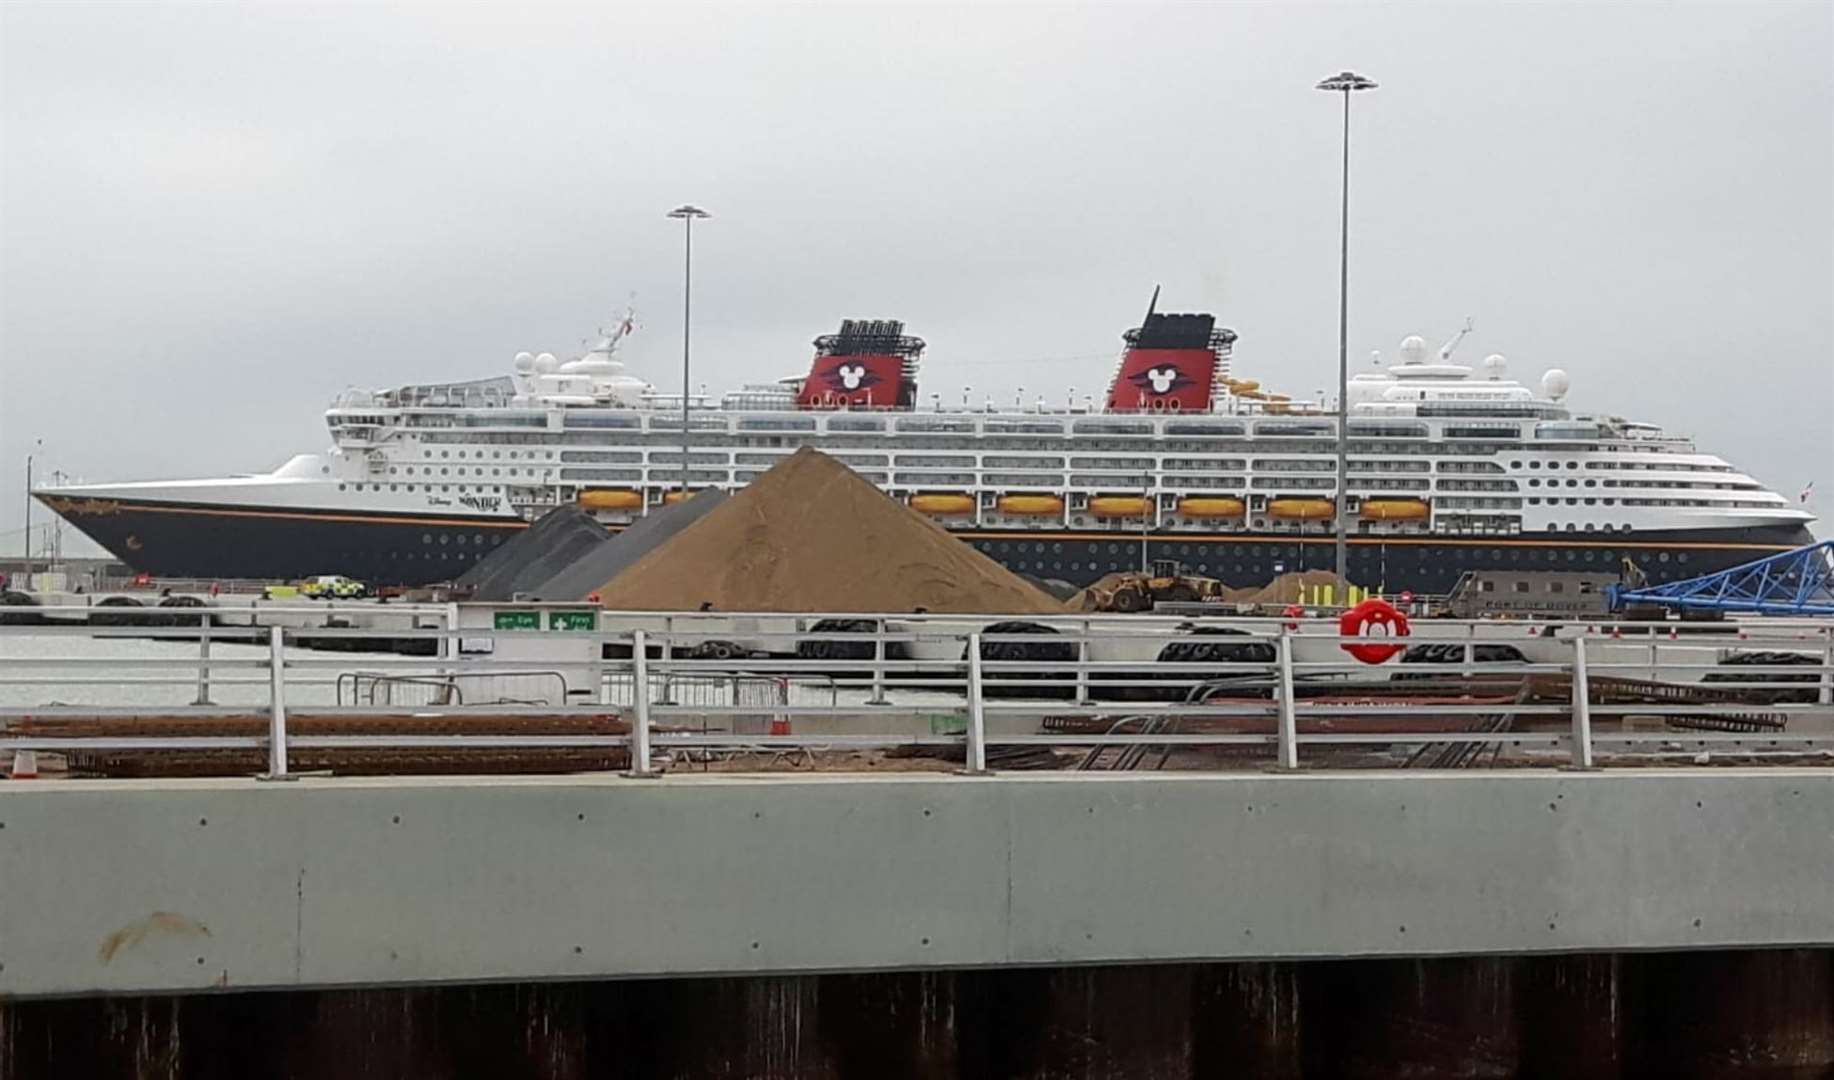 Disney Wonder is currently stationed in Dover